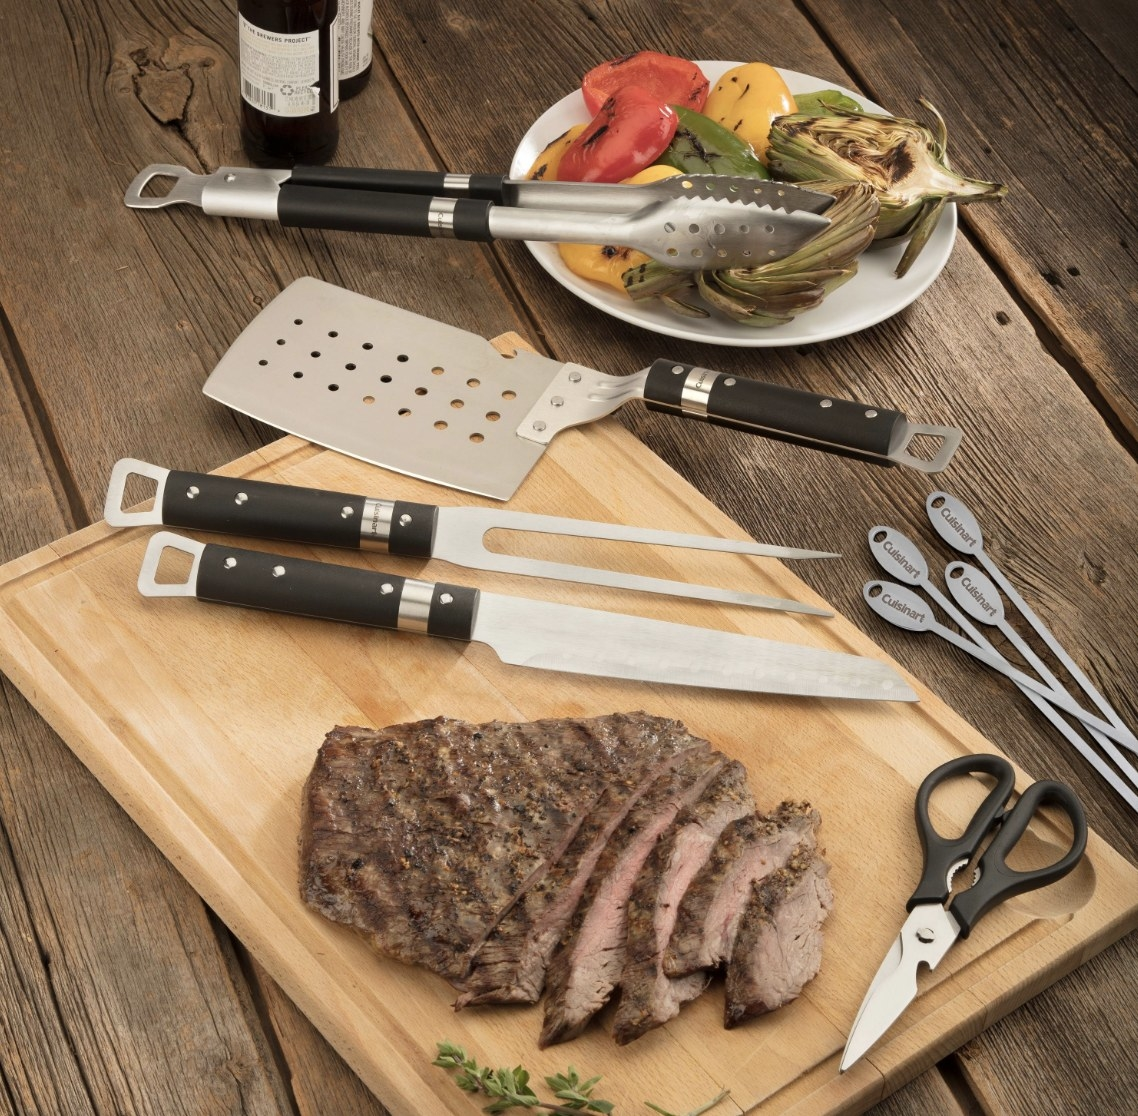 There is a bamboo board with a sliced piece of meat and assorted metal and black tools